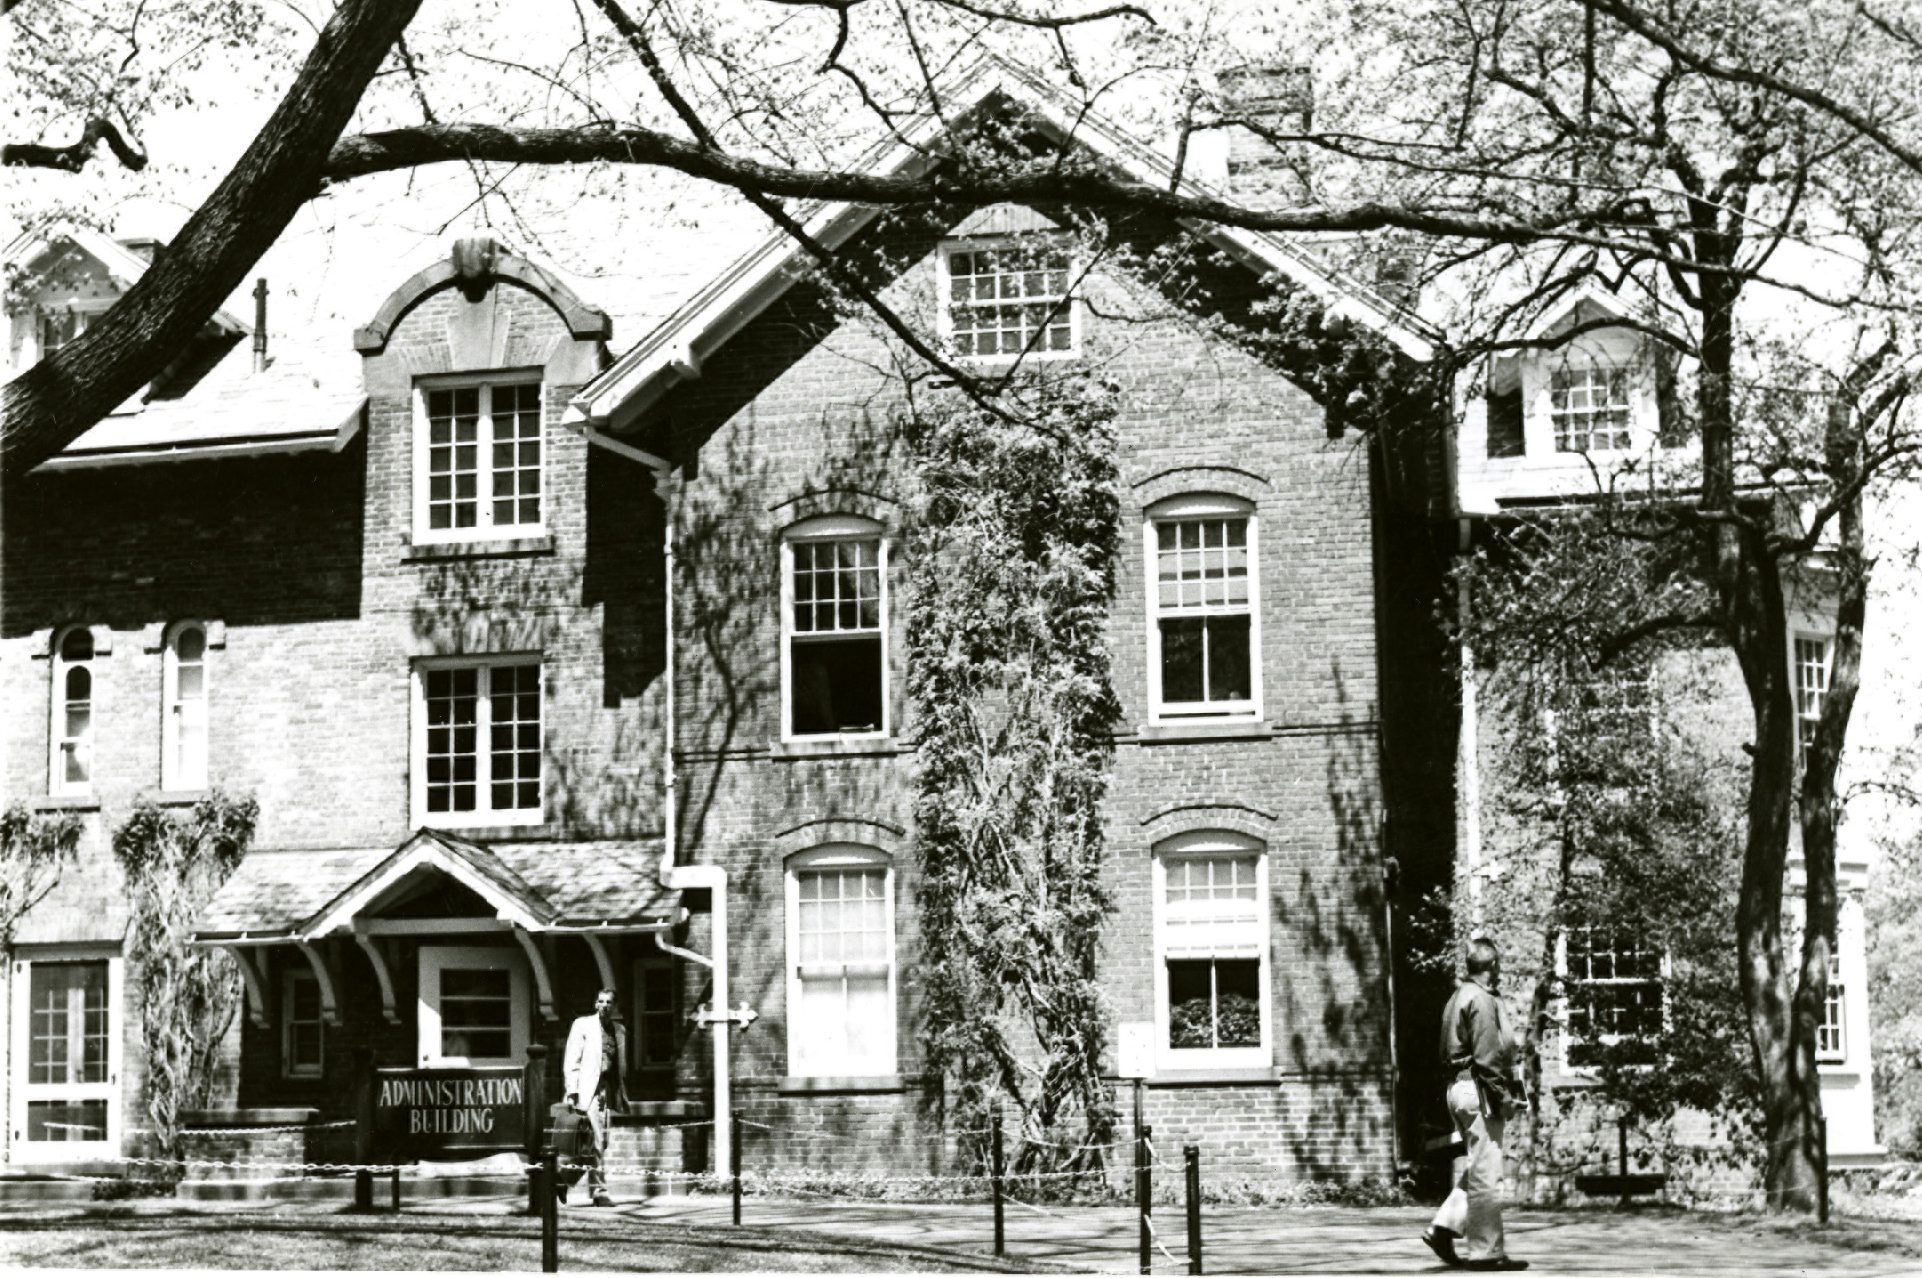 Administration Building, 1280 Asylum Avenue, in the 1950s. (Archives & Special Collections, UConn Library)